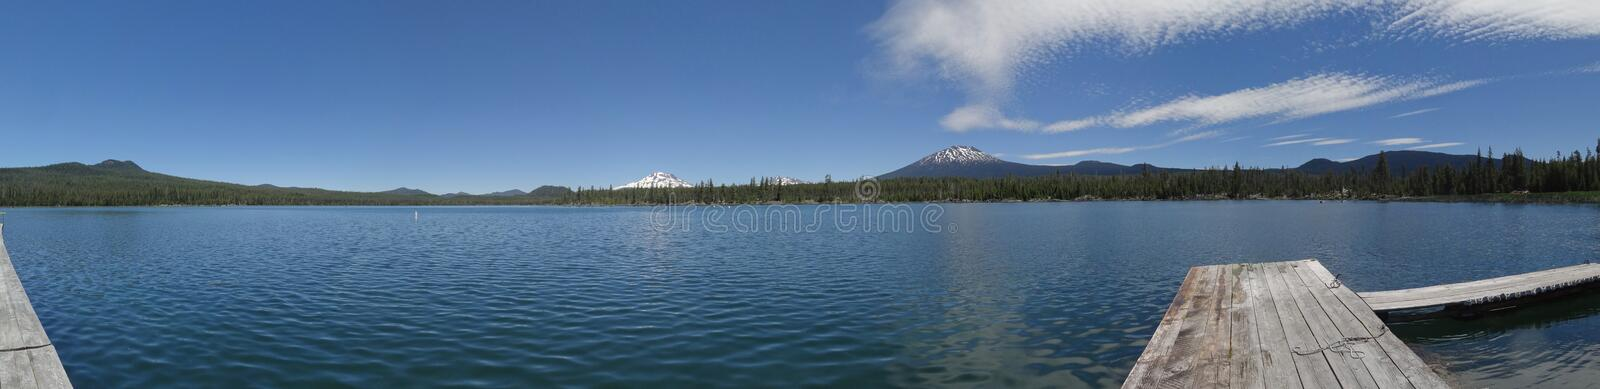 Pristine Lava Lake at the foot of Mt. Bachelor. Oregon - Lava Lake - A sweeping view of the lake, with Mt. Bachelor and the Three Sisters in the distance. July royalty free stock image